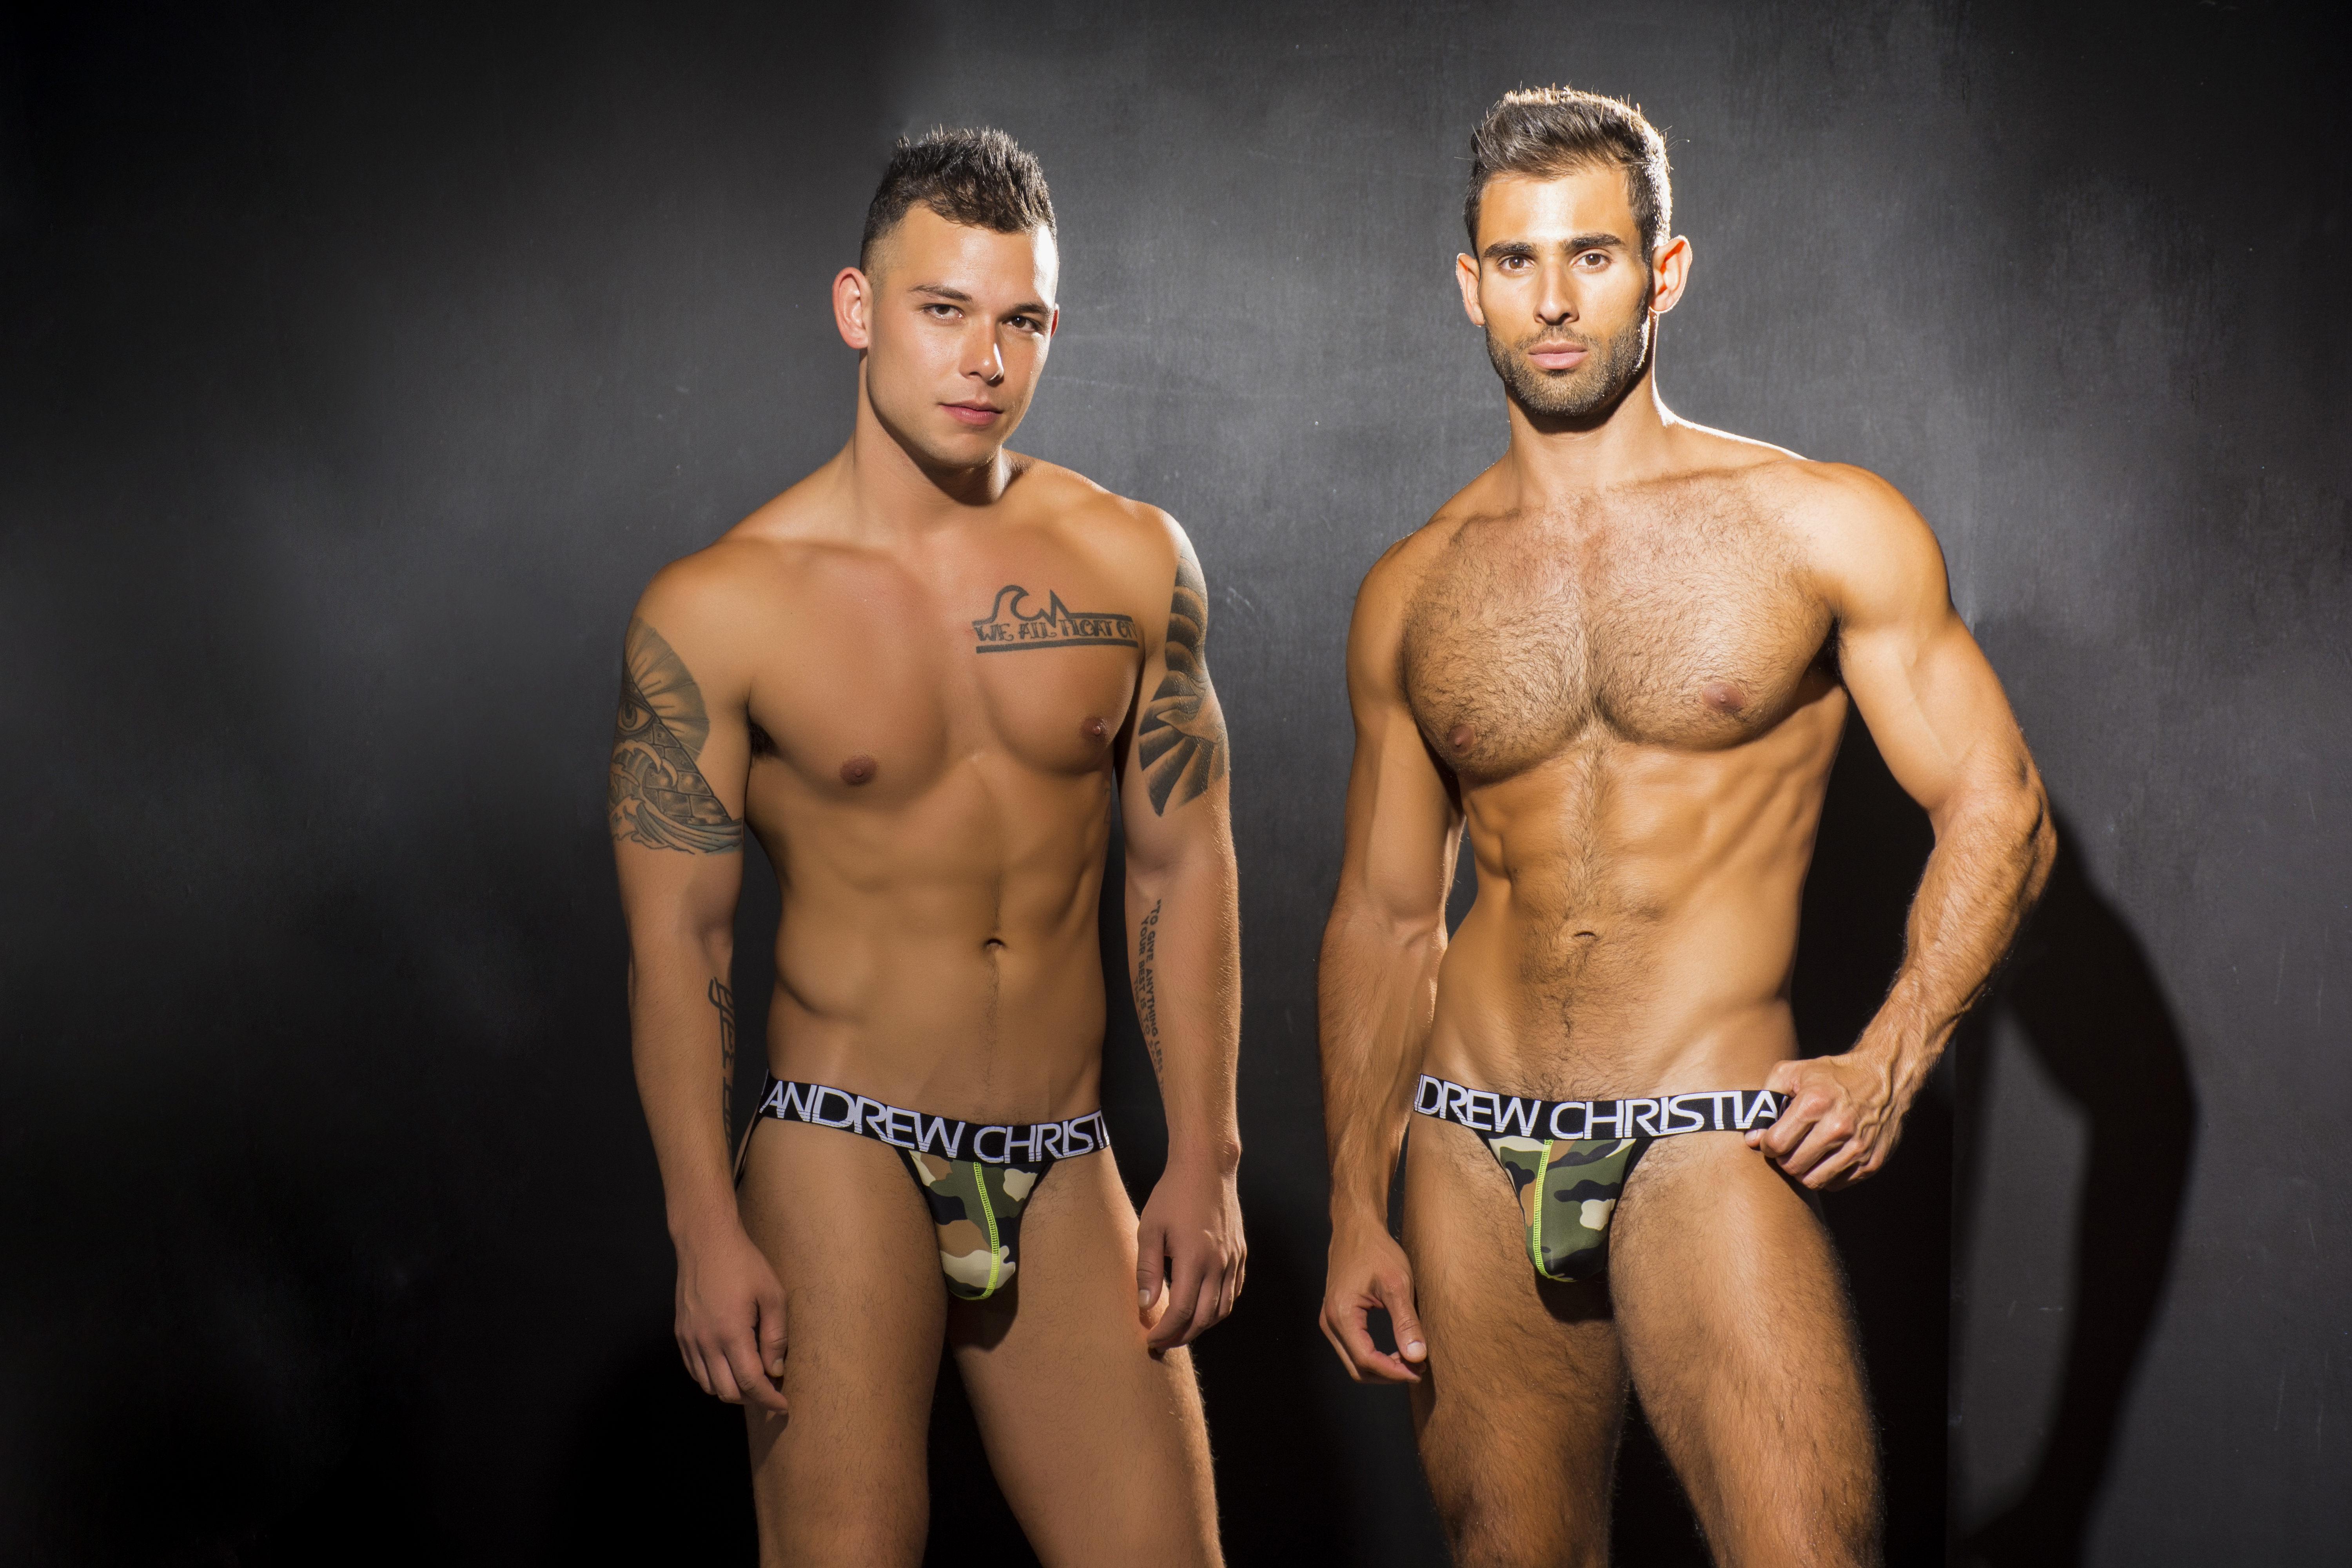 All American Orgy 7 tips before attending your first orgy - andrew christian